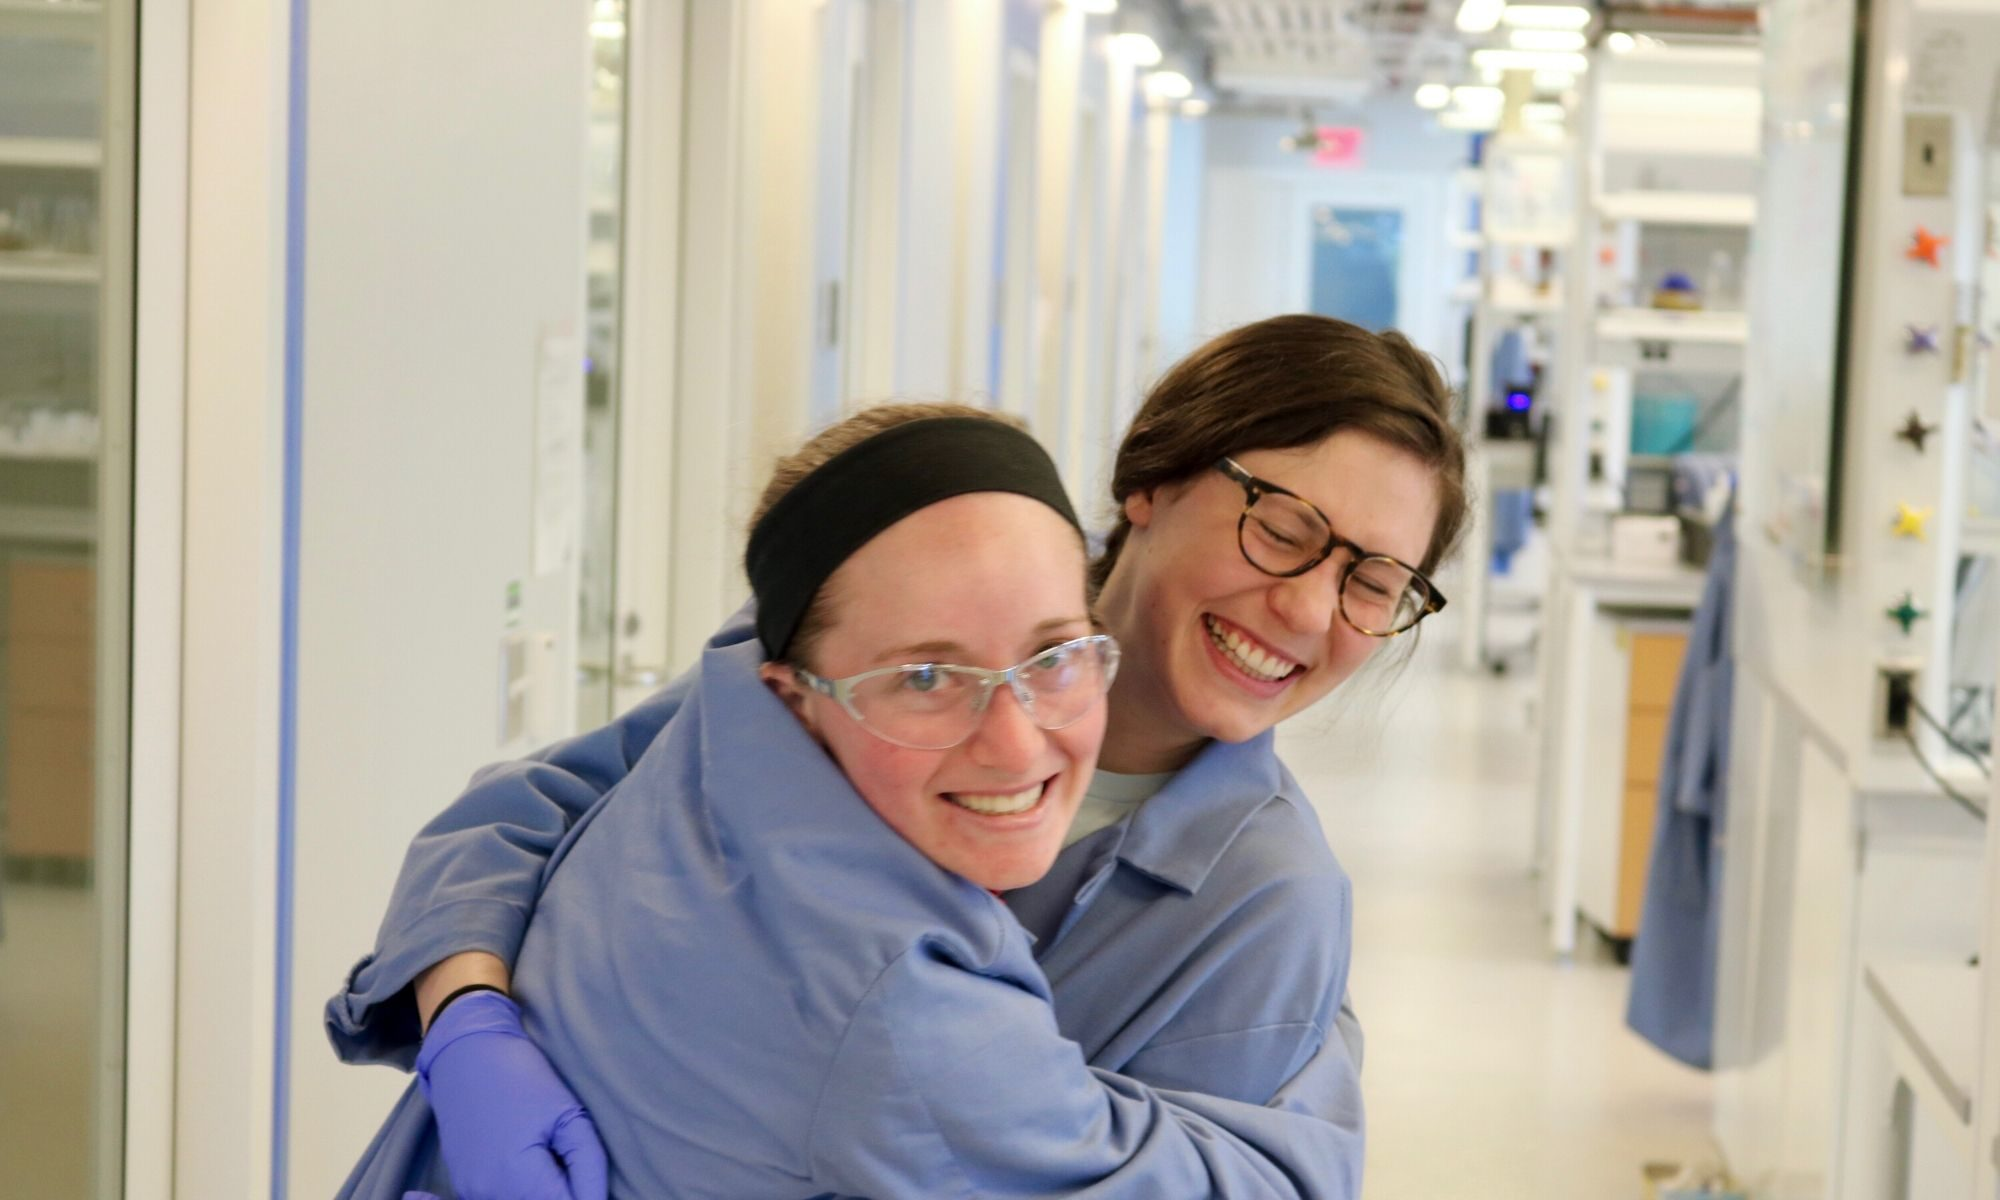 Two women chemists smile and embrace in a lab setting.